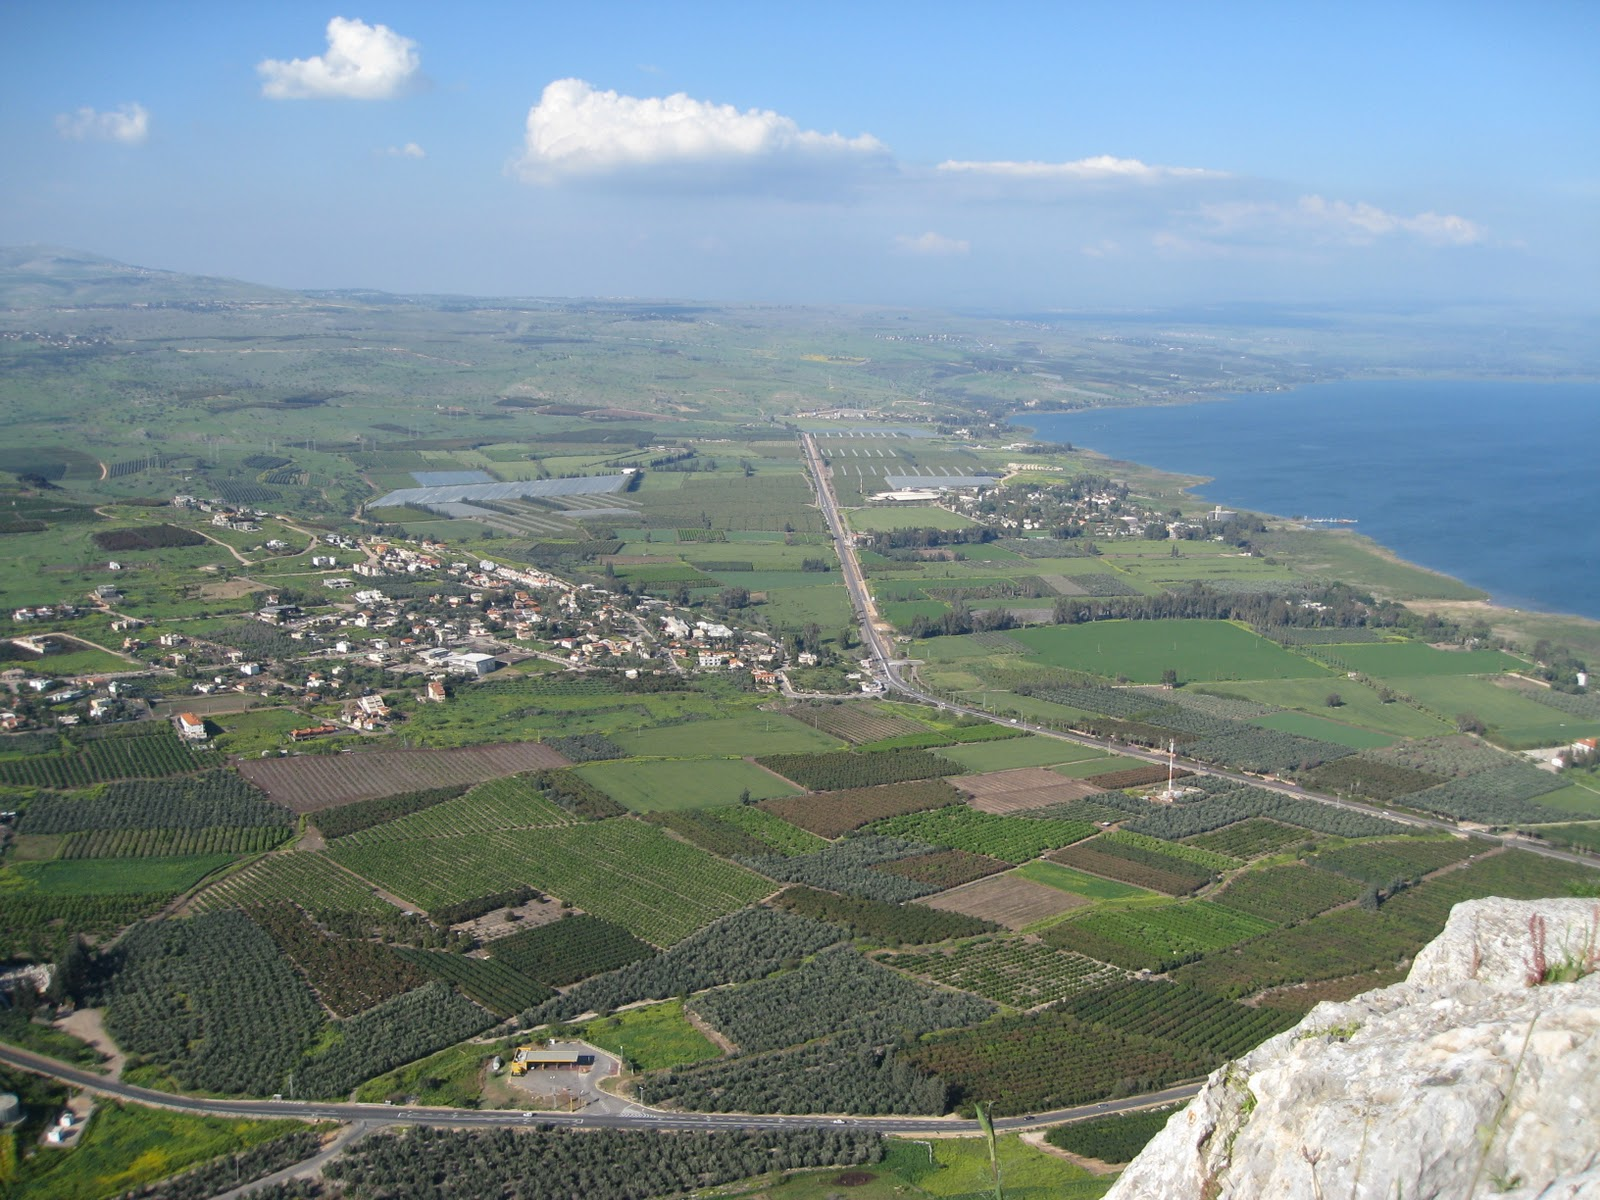 Kibbutz Kinneret Lower Galilee, The National Tour: Weekend Trip through the North